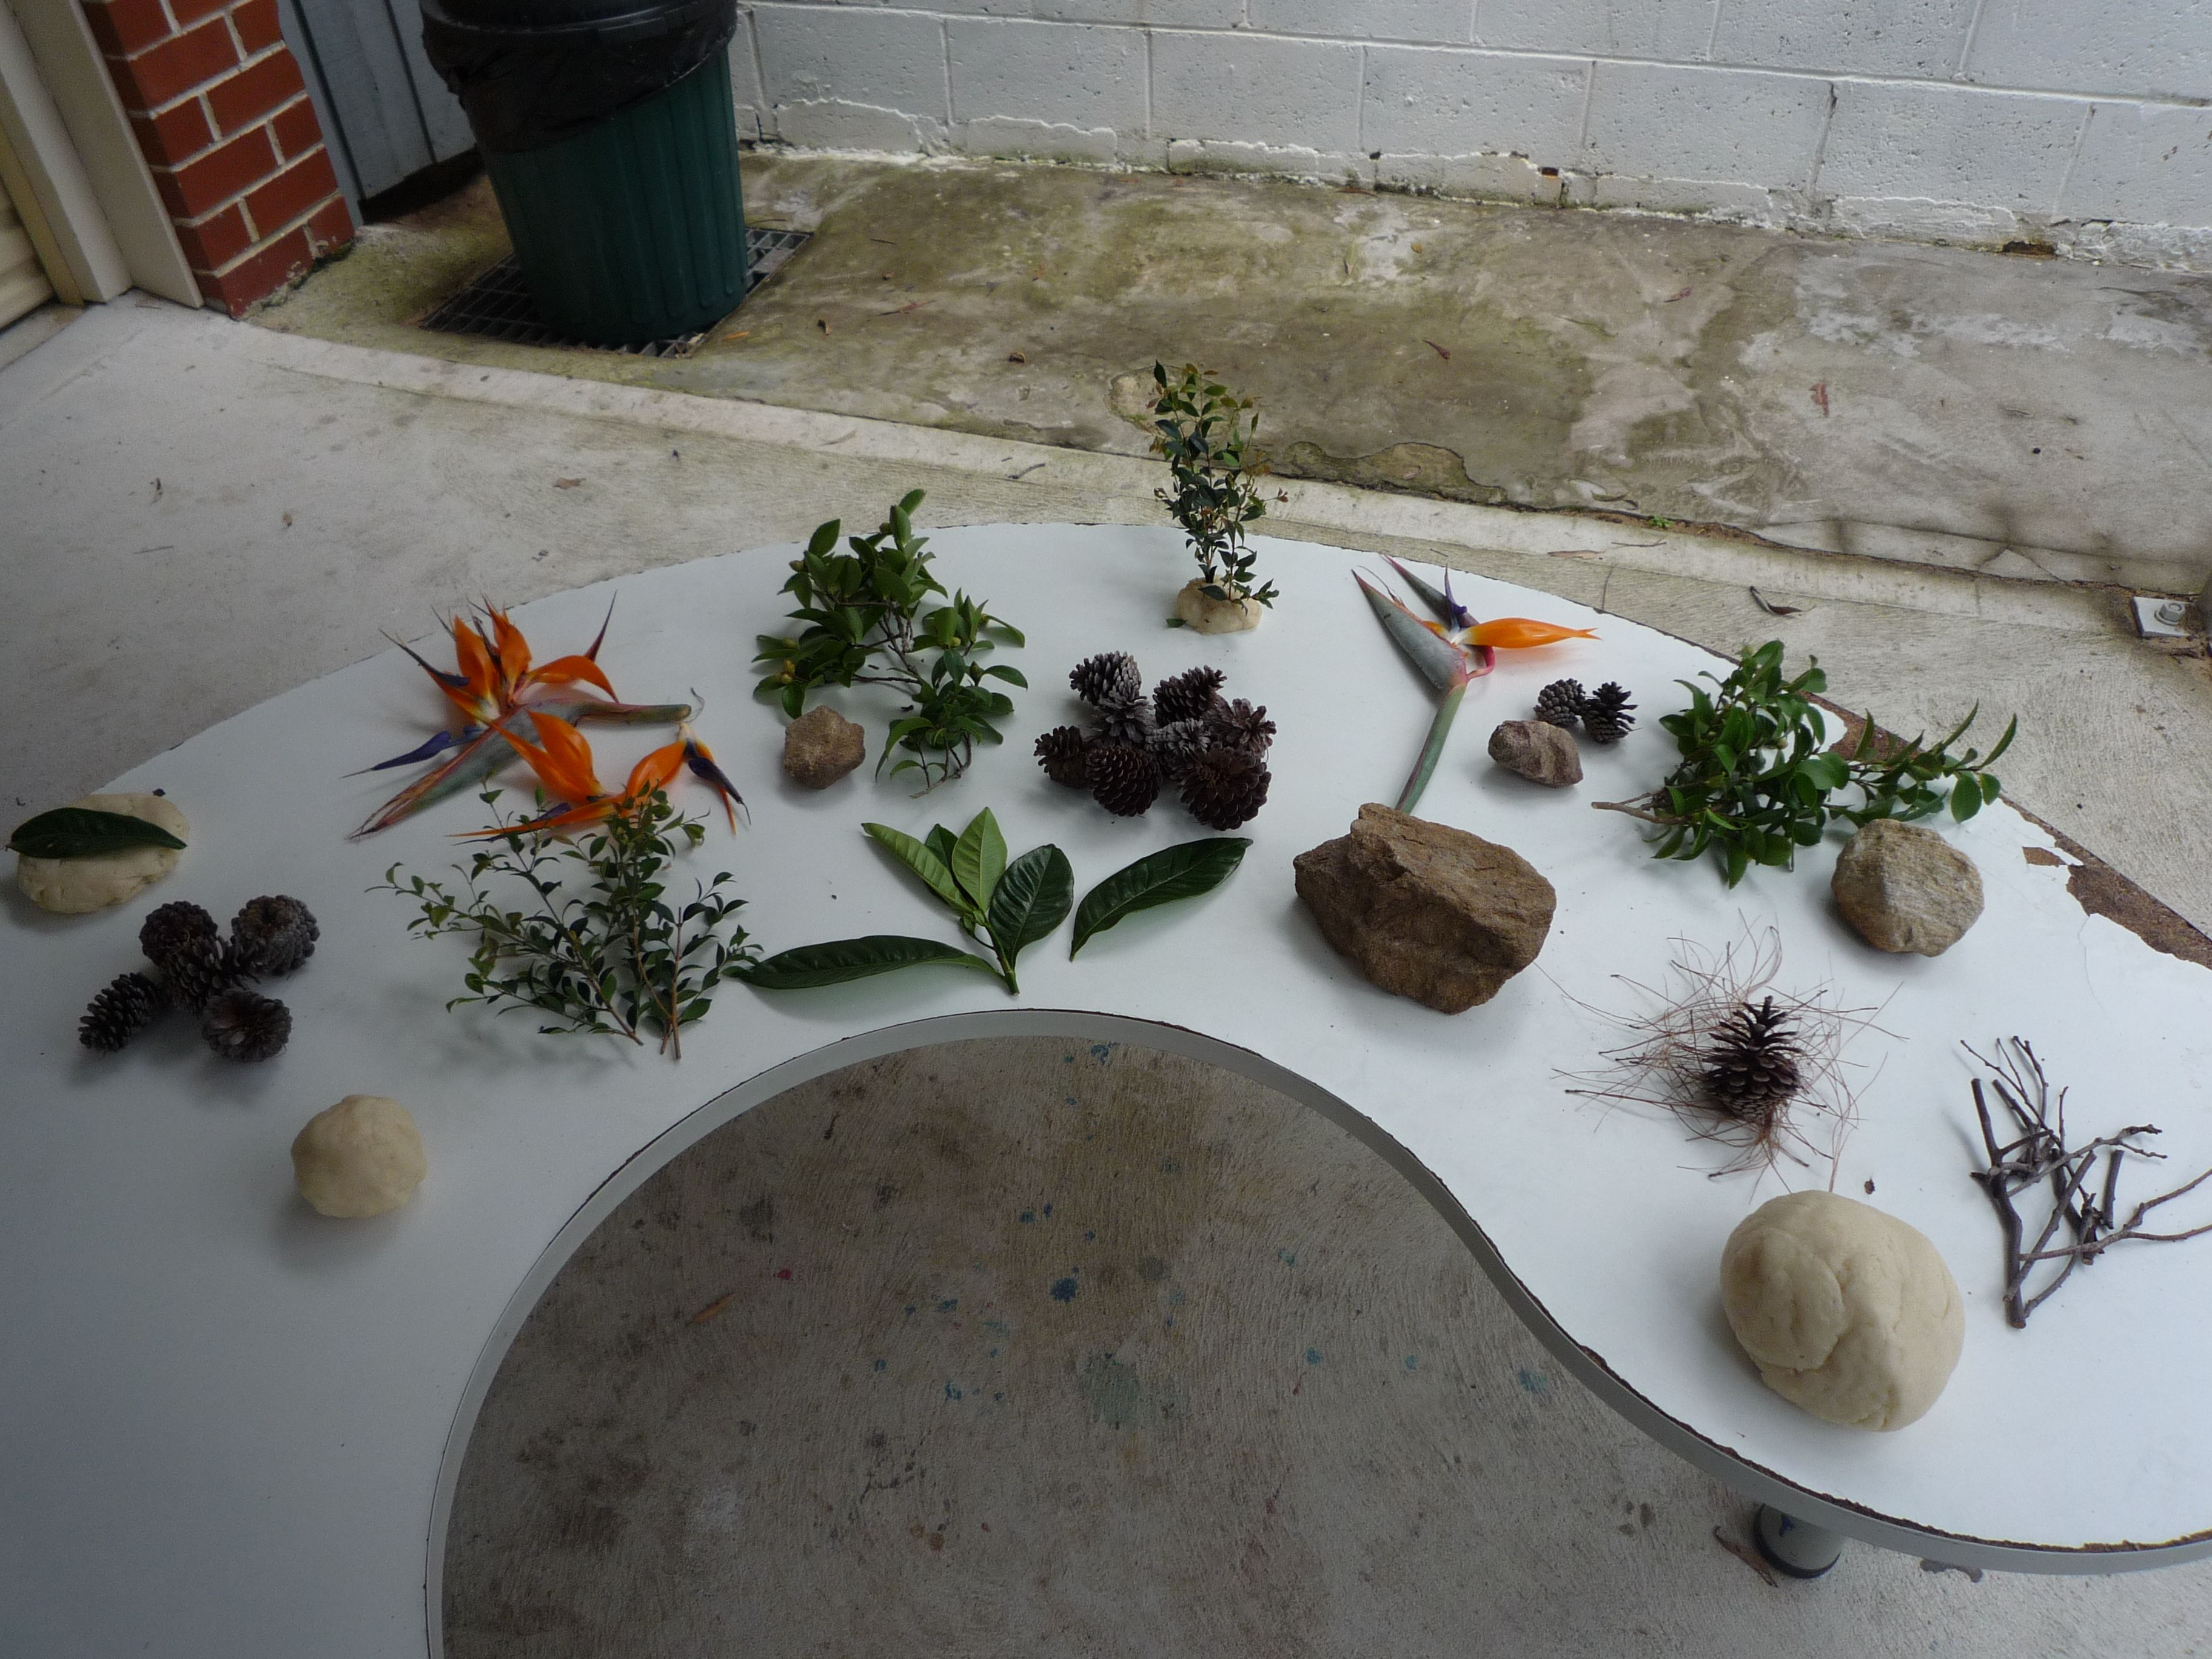 Create a natural experience for the children with easy to find materials from the garden. Add some homemade play dough and Voila! See their imagination expands.